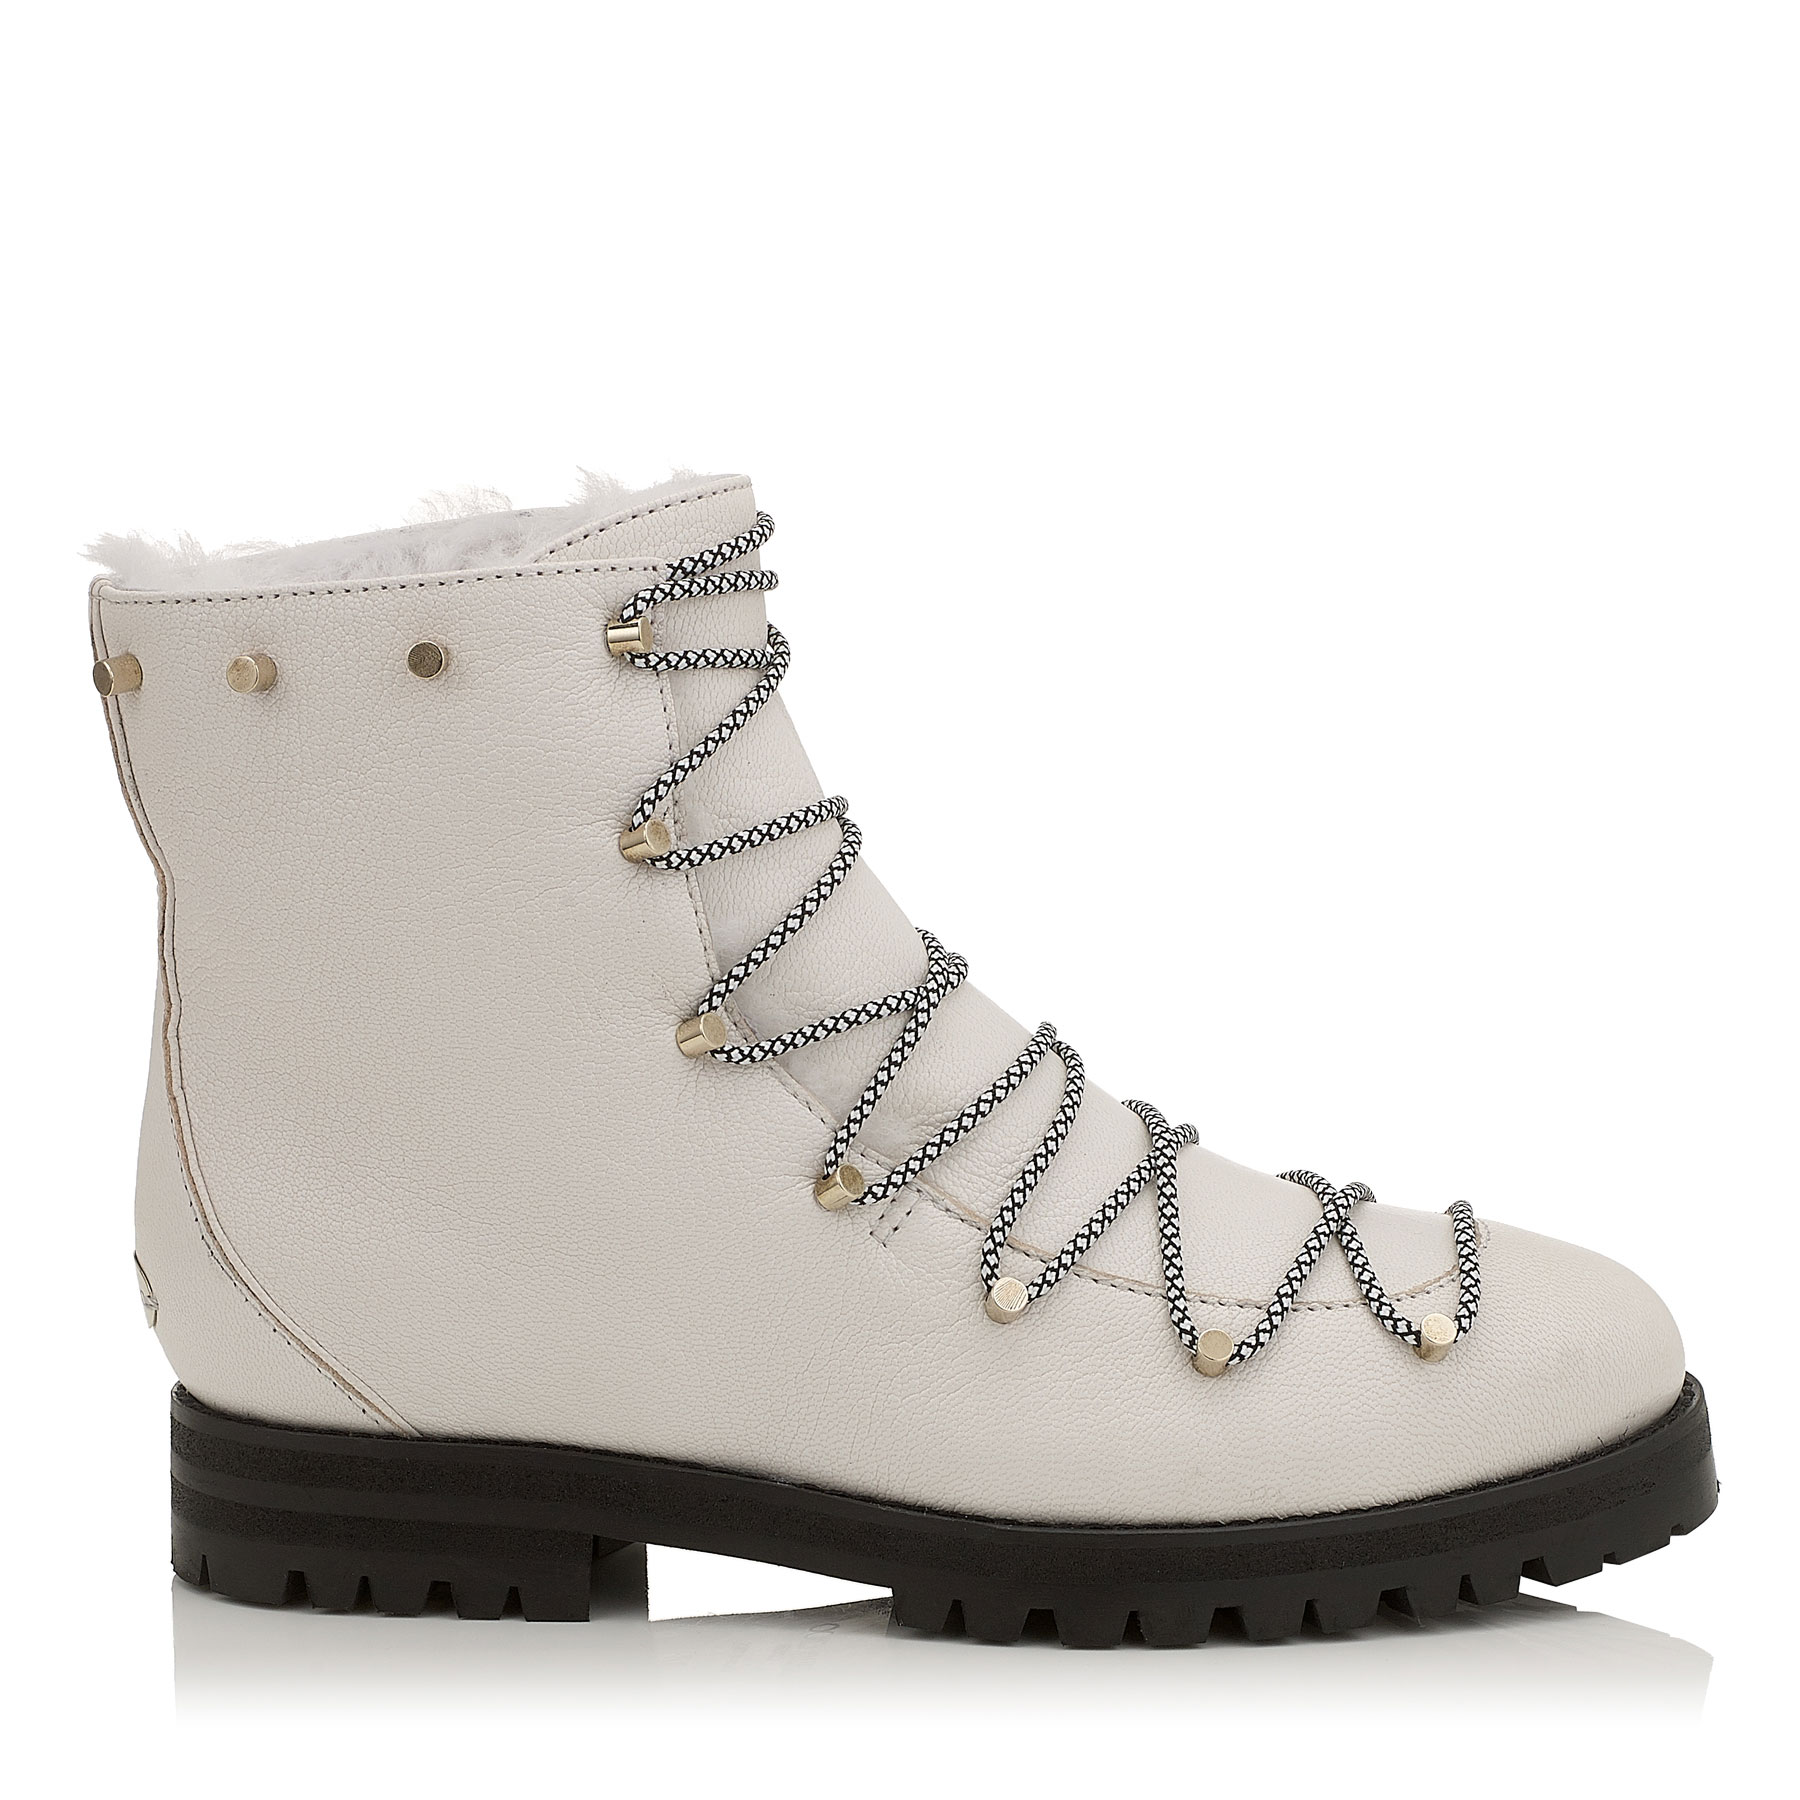 DRAKE FLAT White Grainy Leather Combat Boots with Shearling Lining